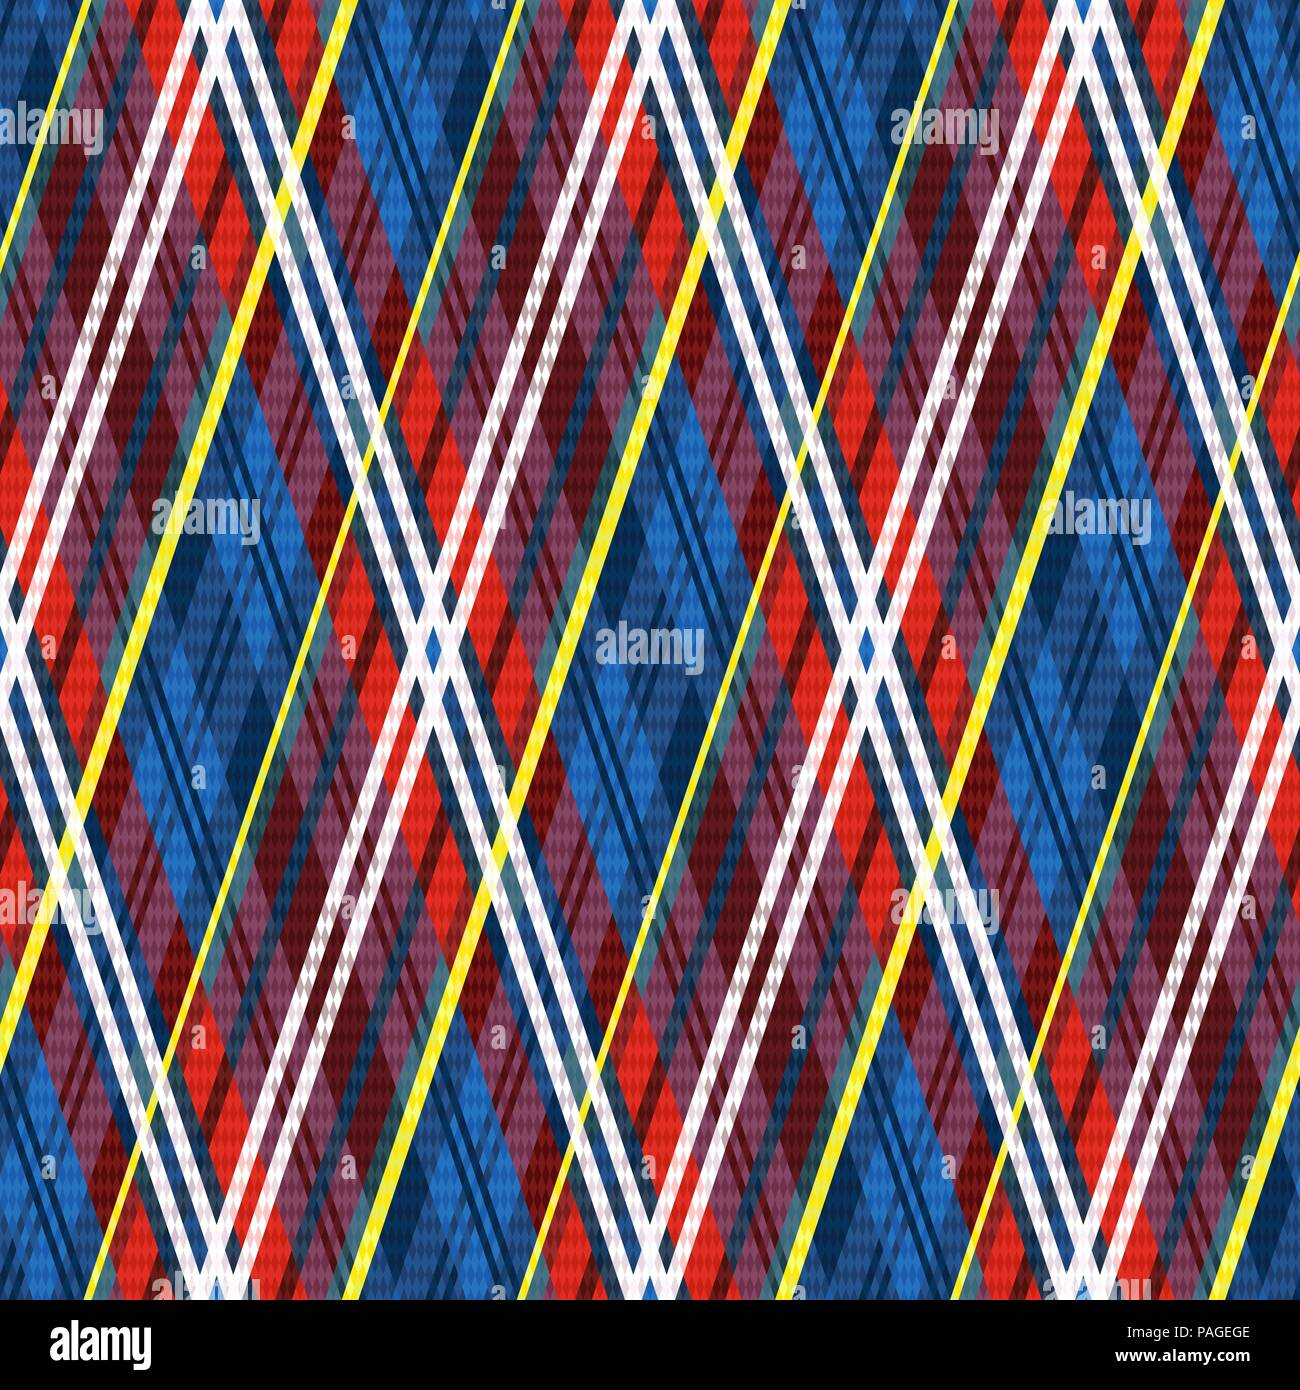 Seamless with rhombic pattern in multicolor mainly in red and blue hues, vector as a fabric texture - Stock Vector